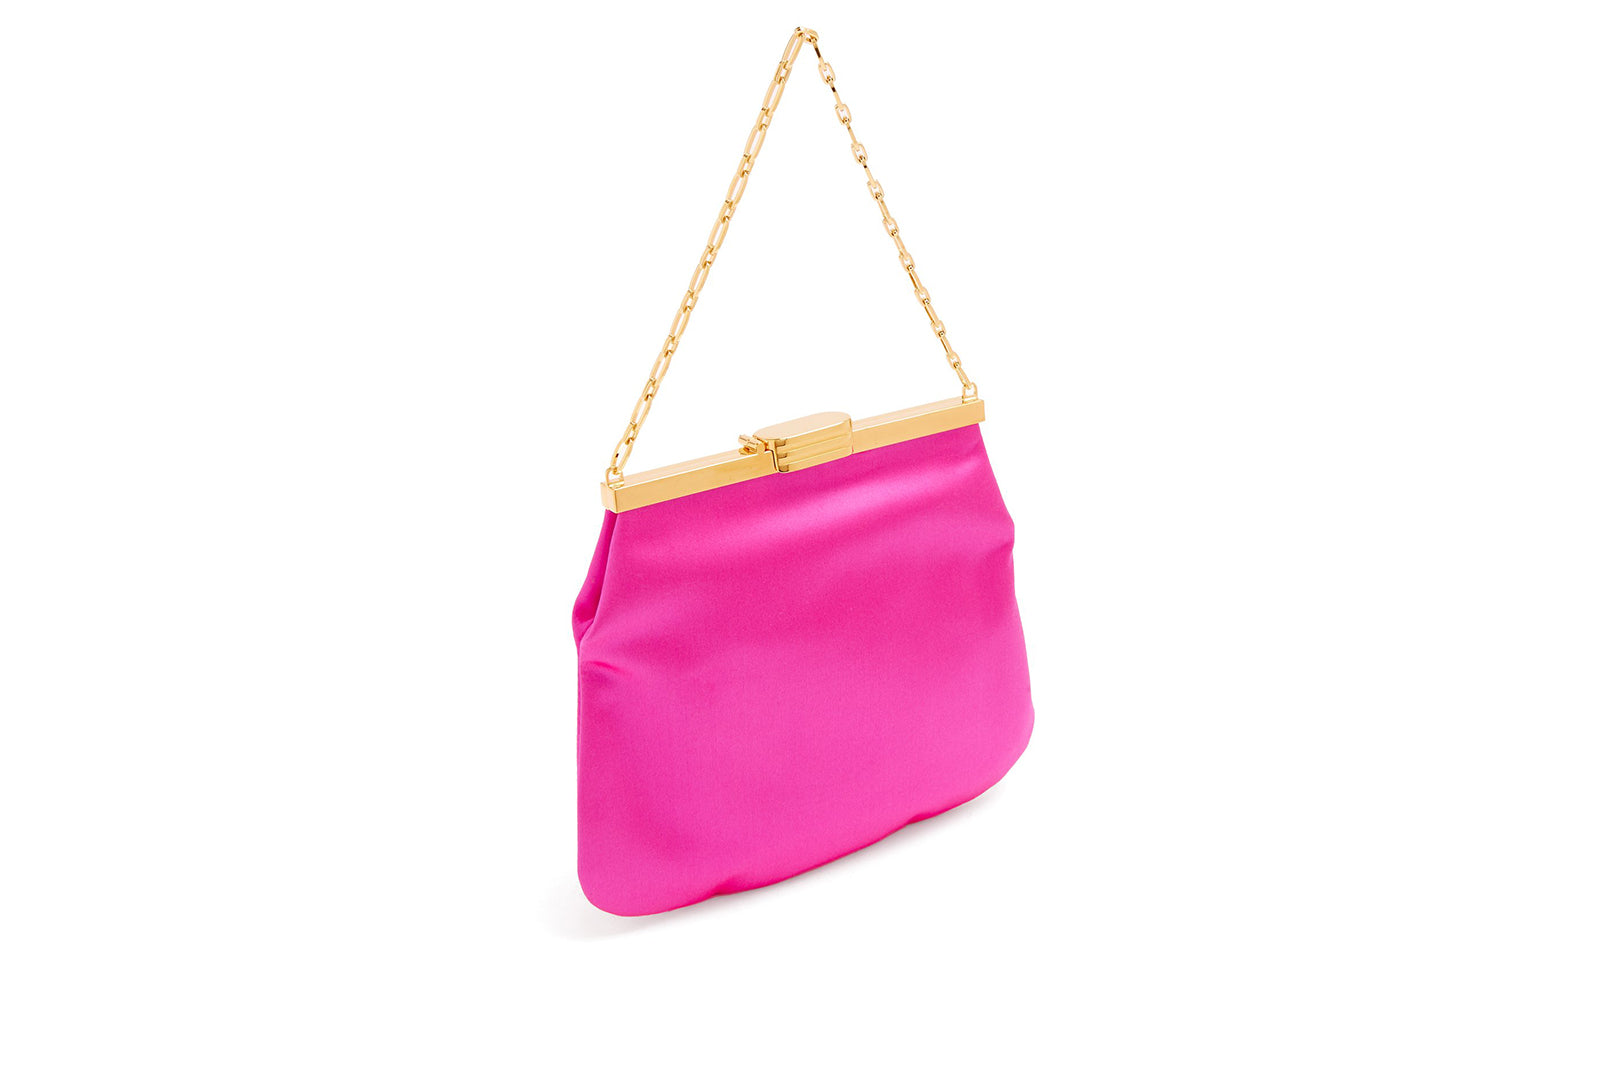 4 AM Bag in Fuchsia Silk Satin with 24k Gold Dipped Hardware